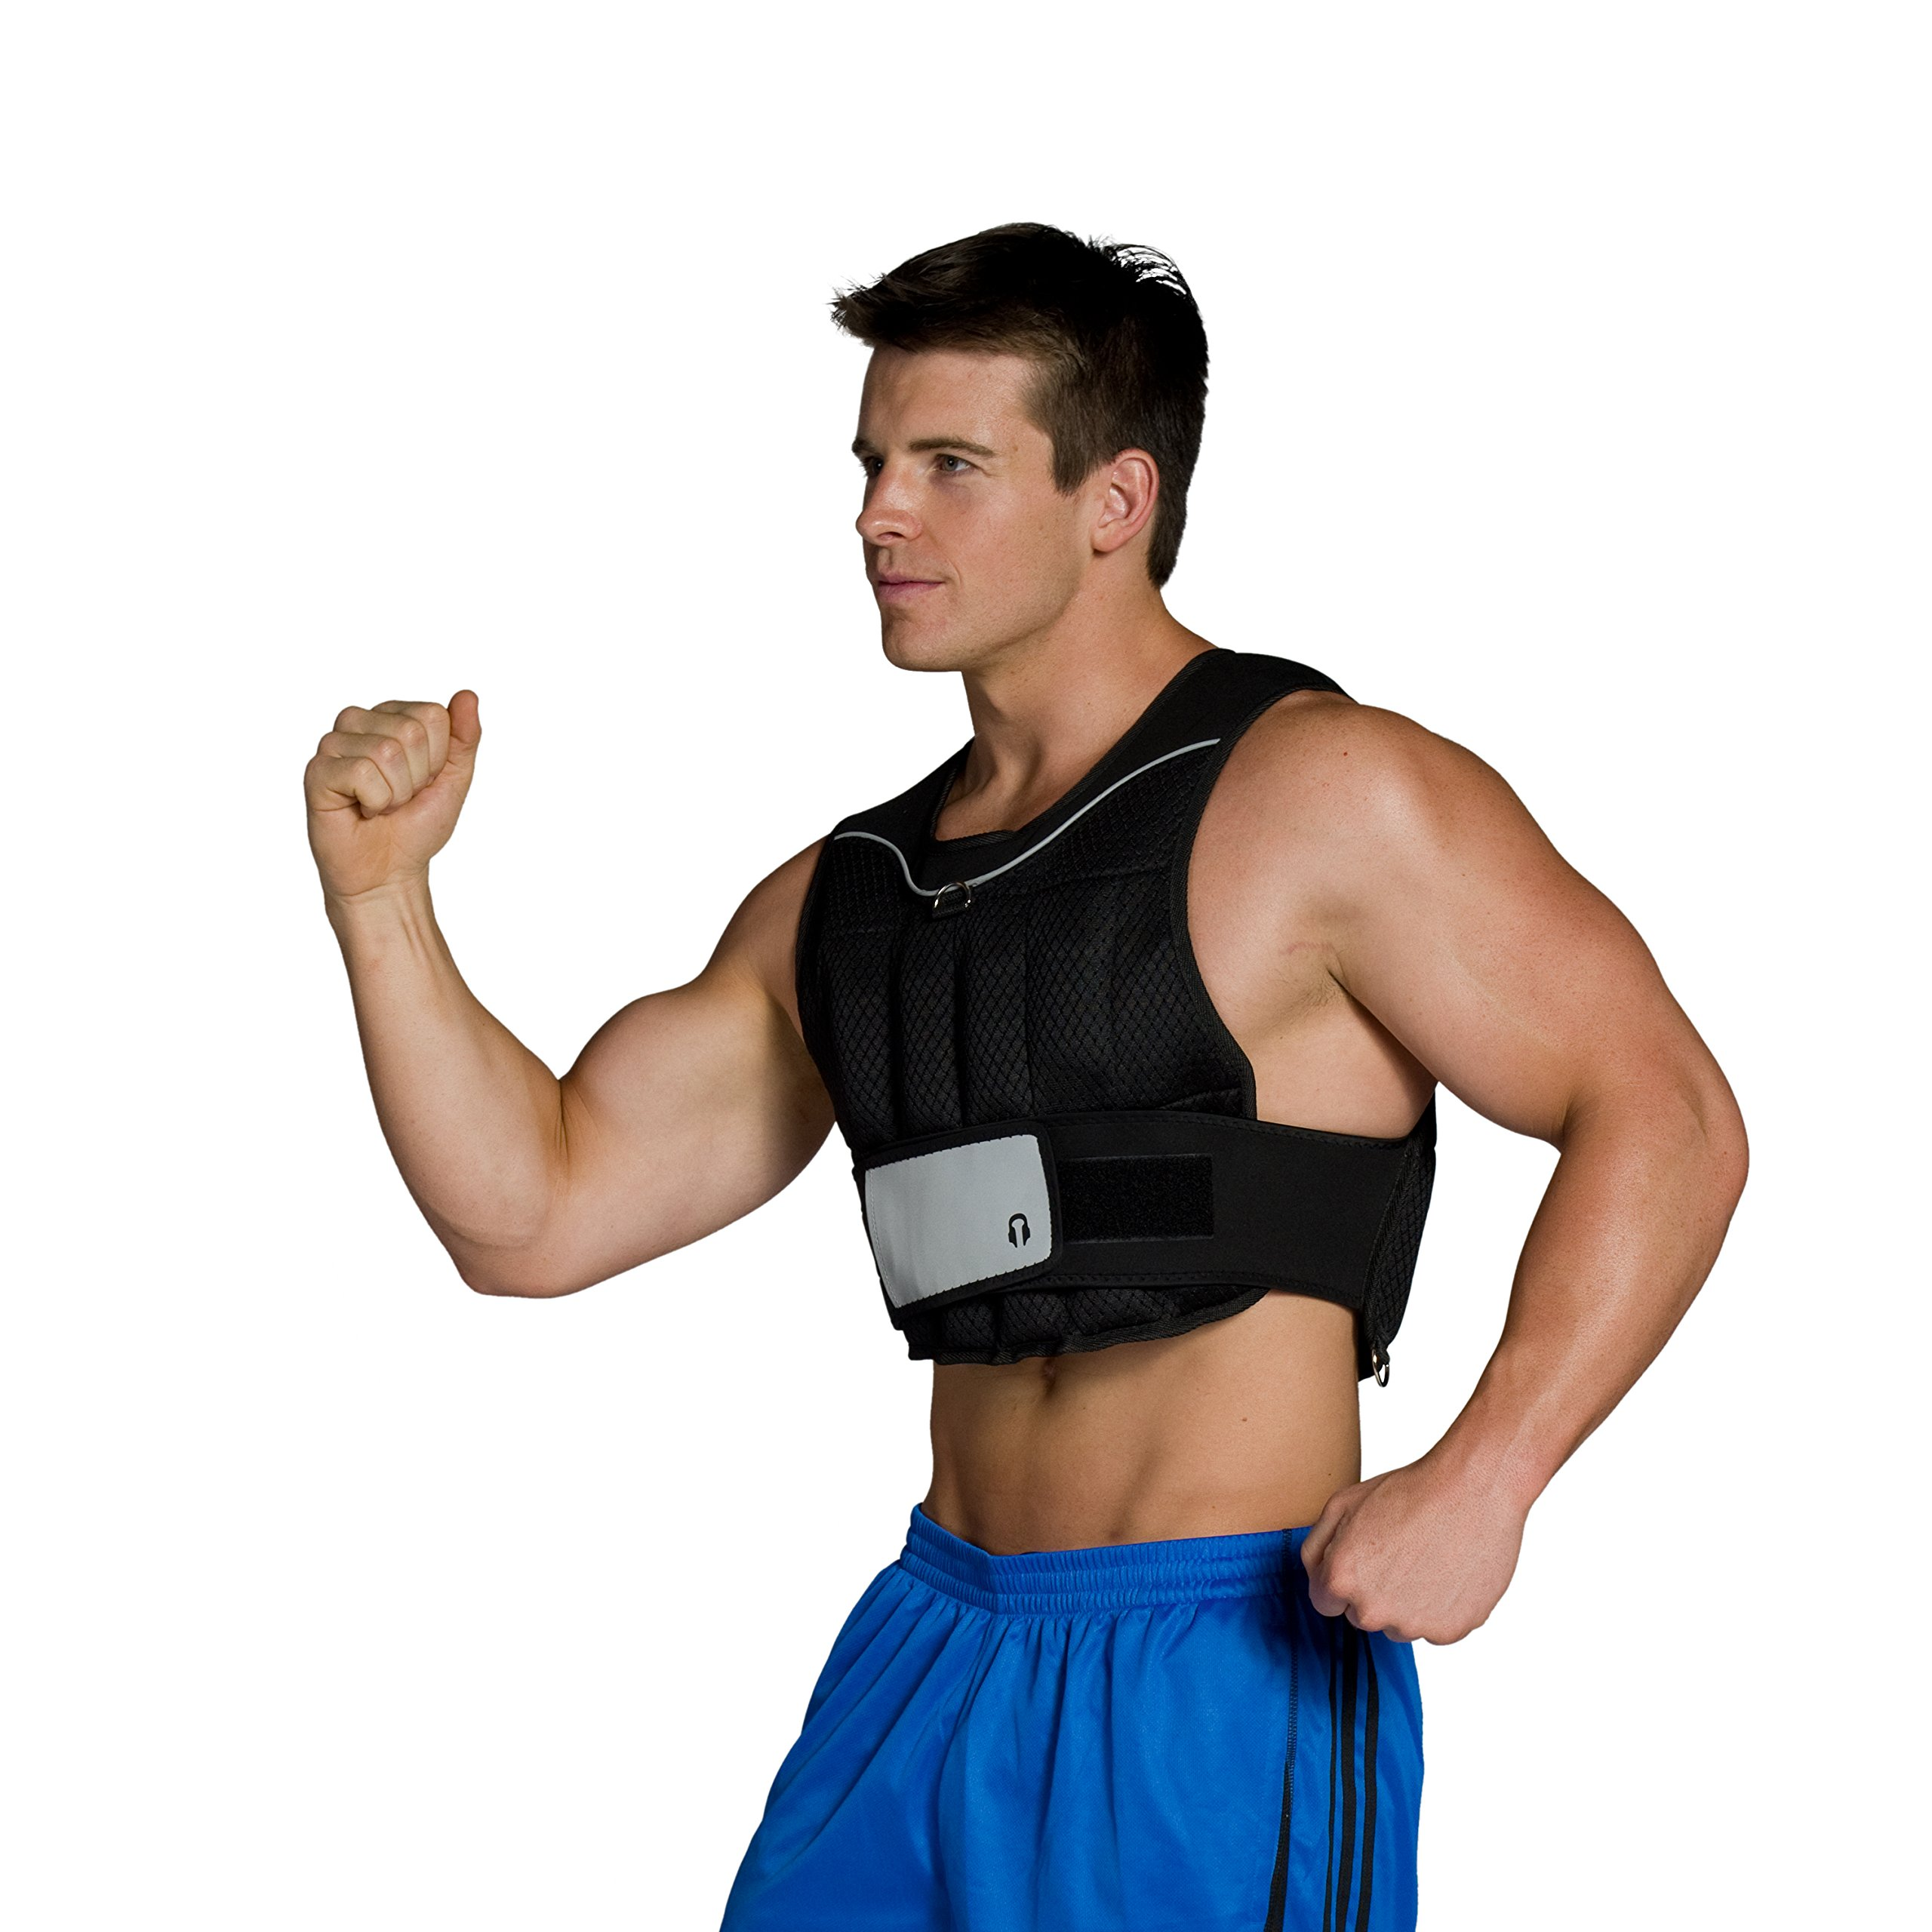 CAP Barbell (HHWV-CB020C) Adjustable Weighted Vest, 20-Pound by CAP Barbell